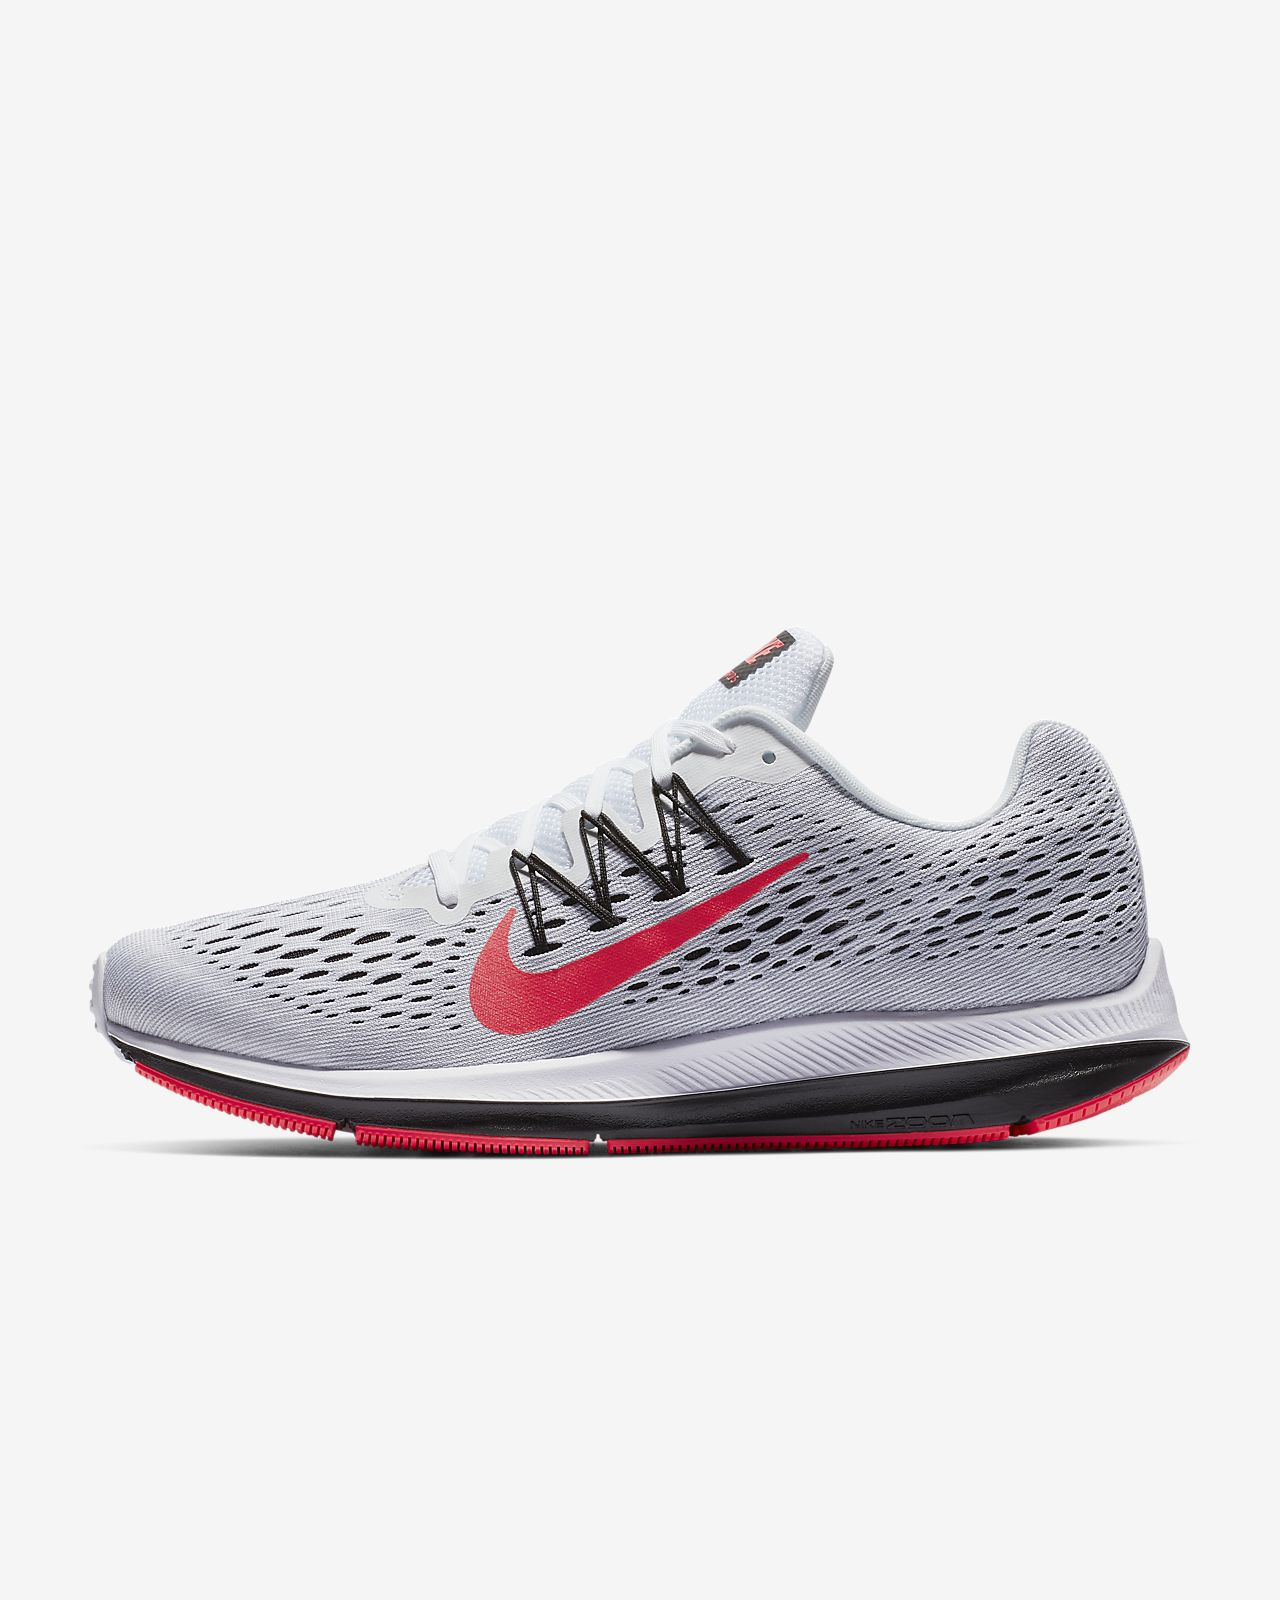 ab8d0bc603e9 Nike Air Zoom Winflo 5 Men s Running Shoe. Nike.com IN